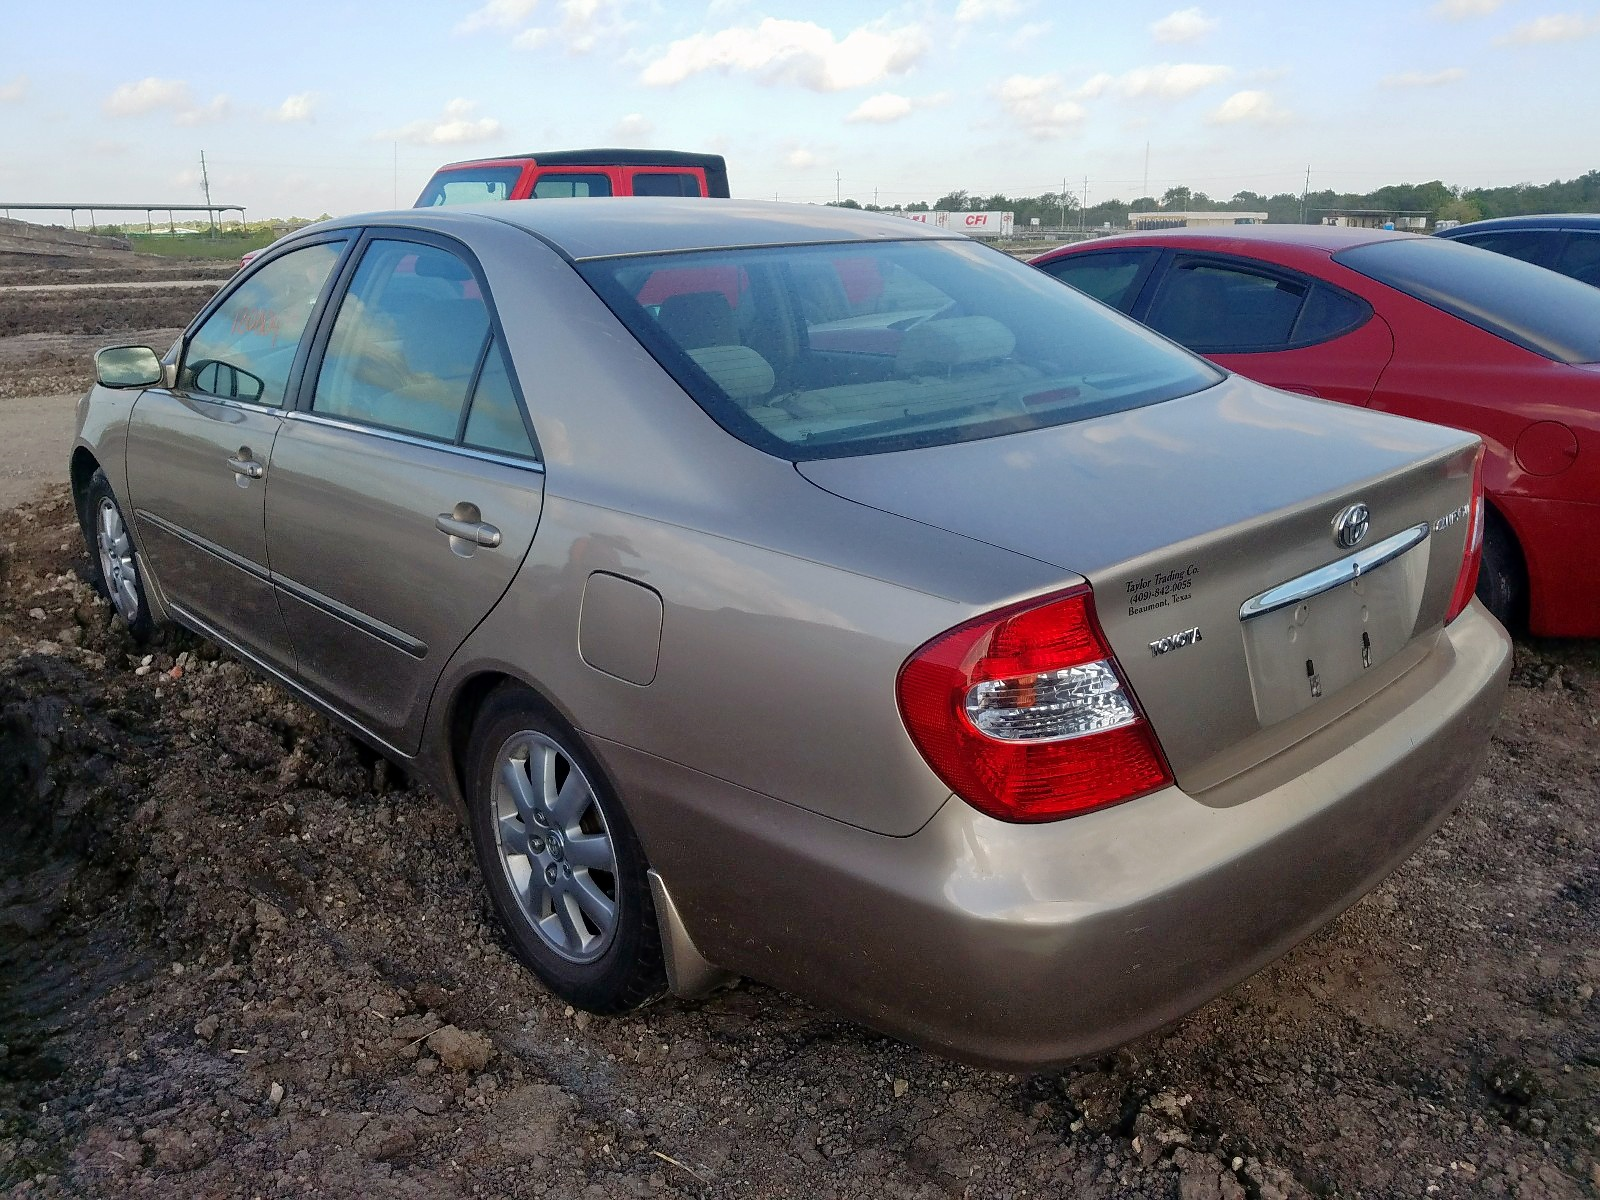 2002 Toyota Camry Le 2.4L [Angle] View